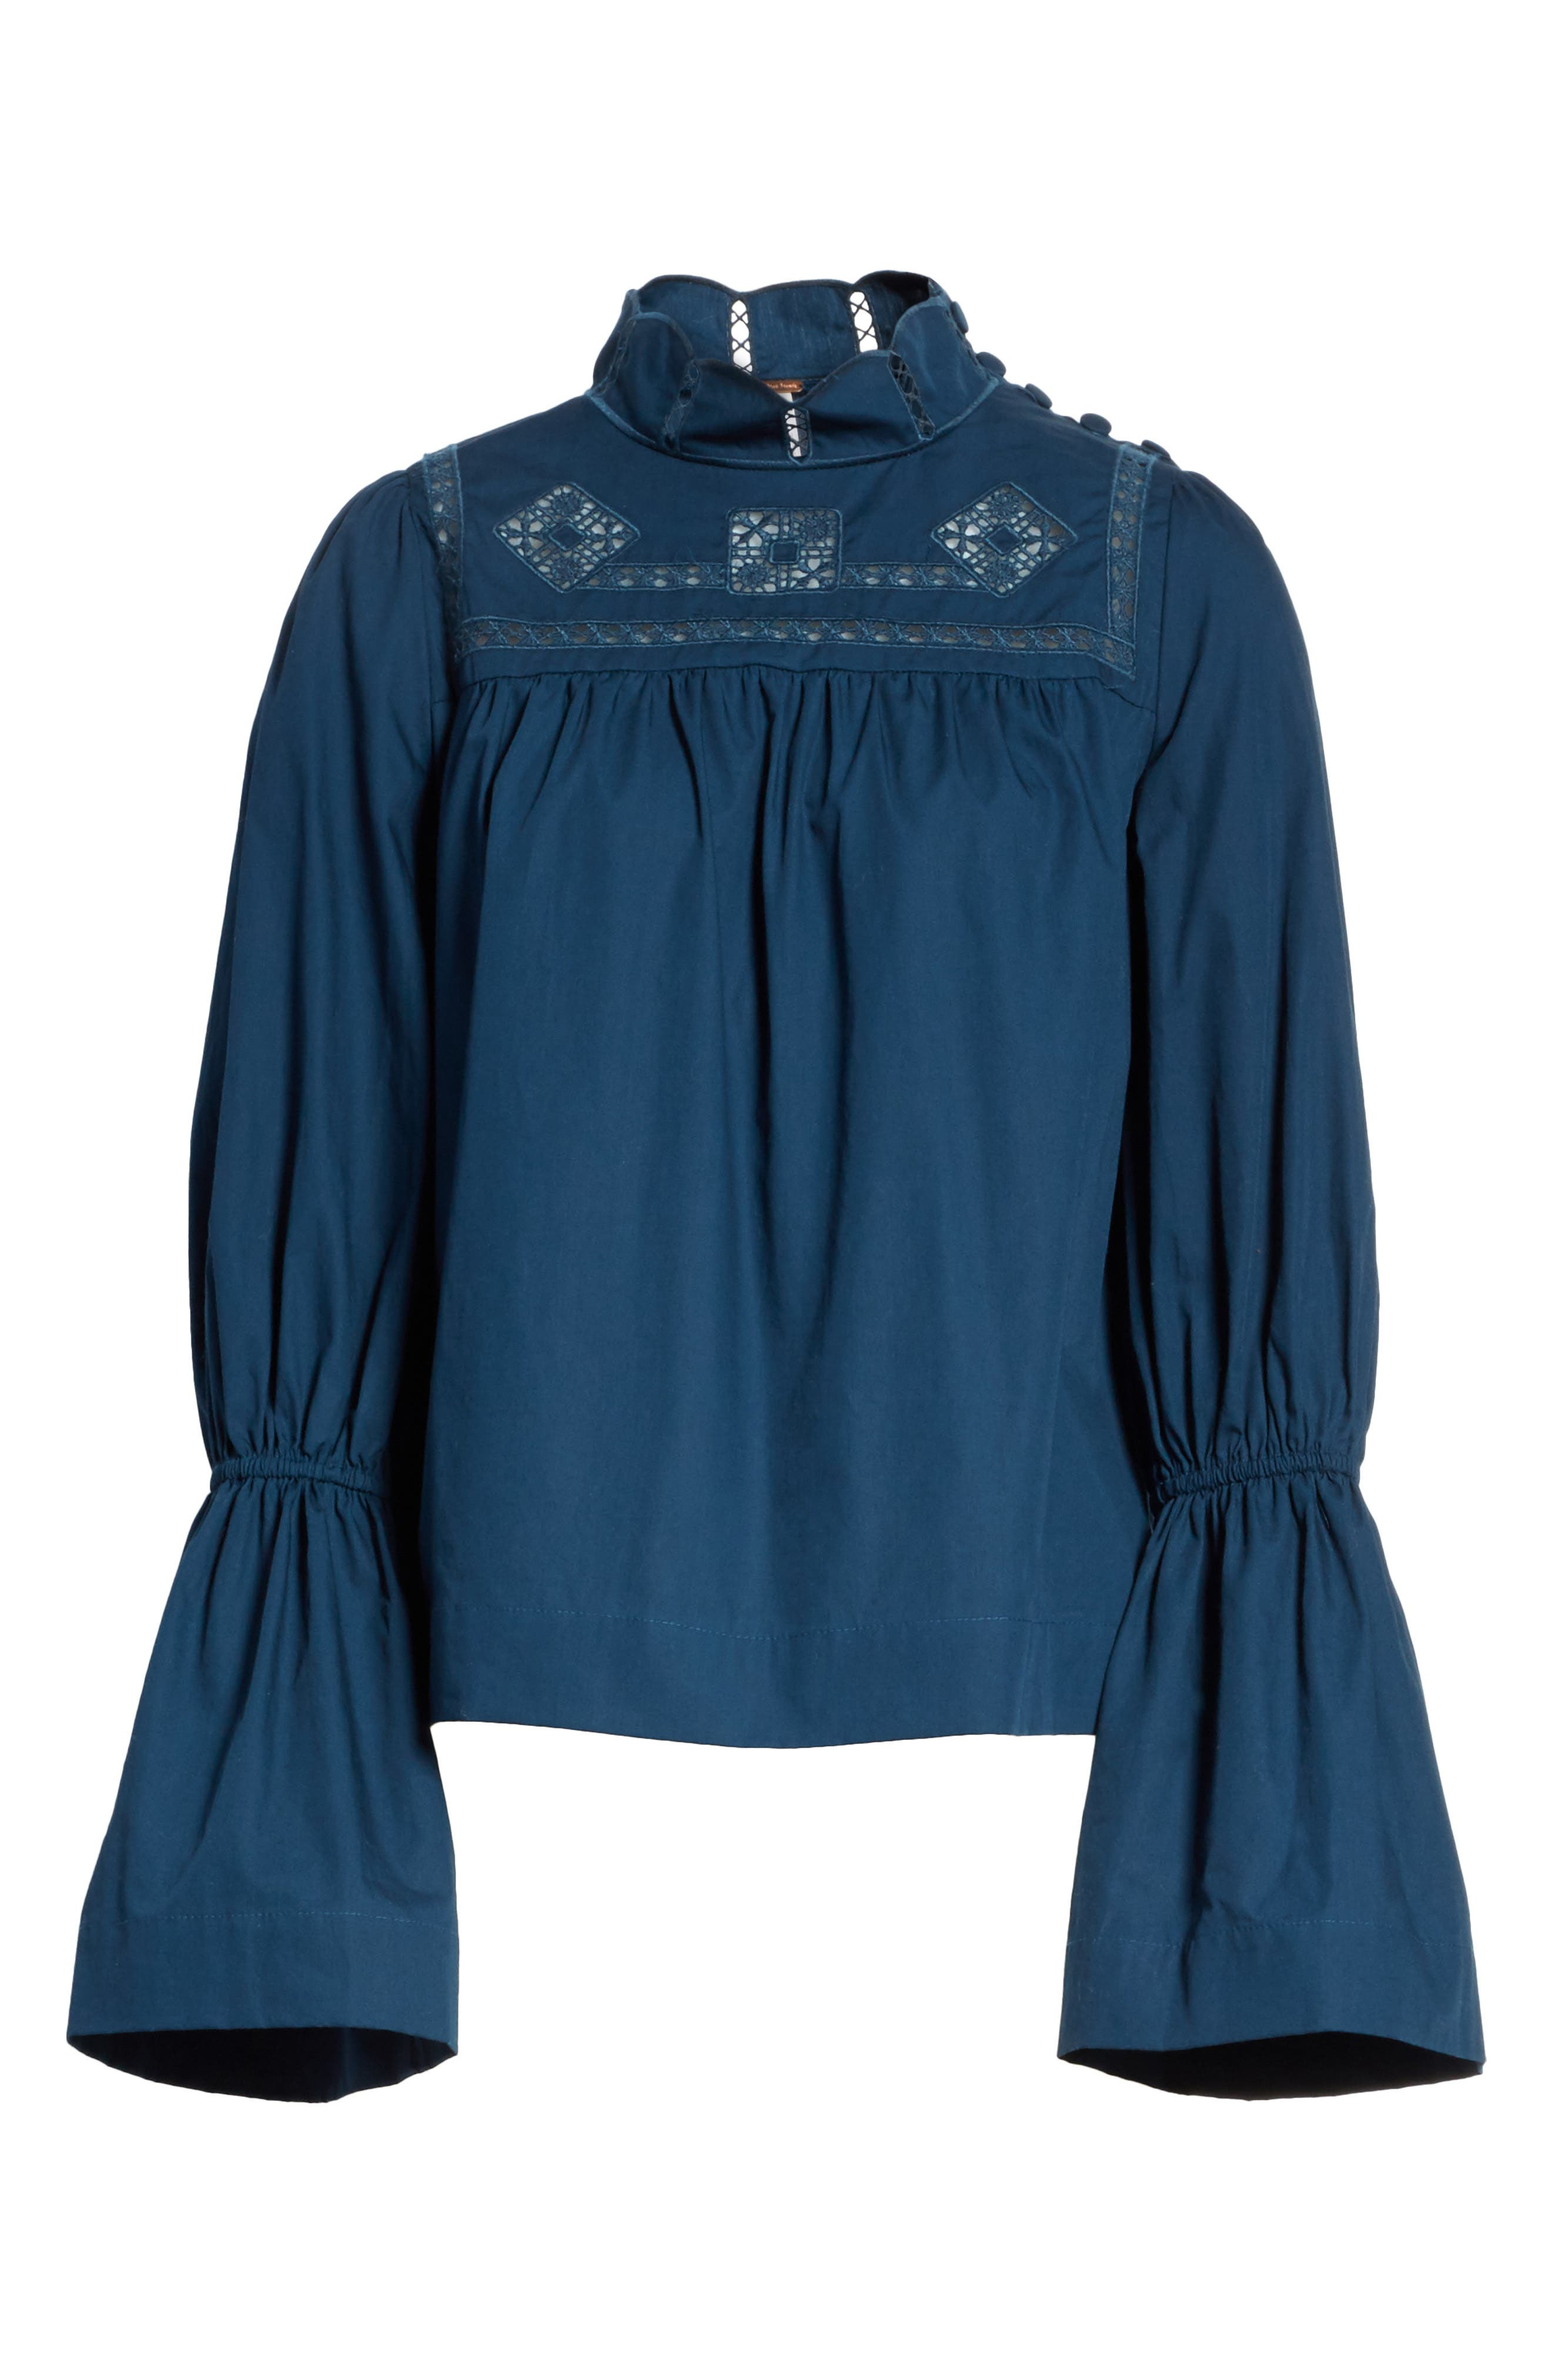 Another Eternity Blouse,                             Alternate thumbnail 6, color,                             440